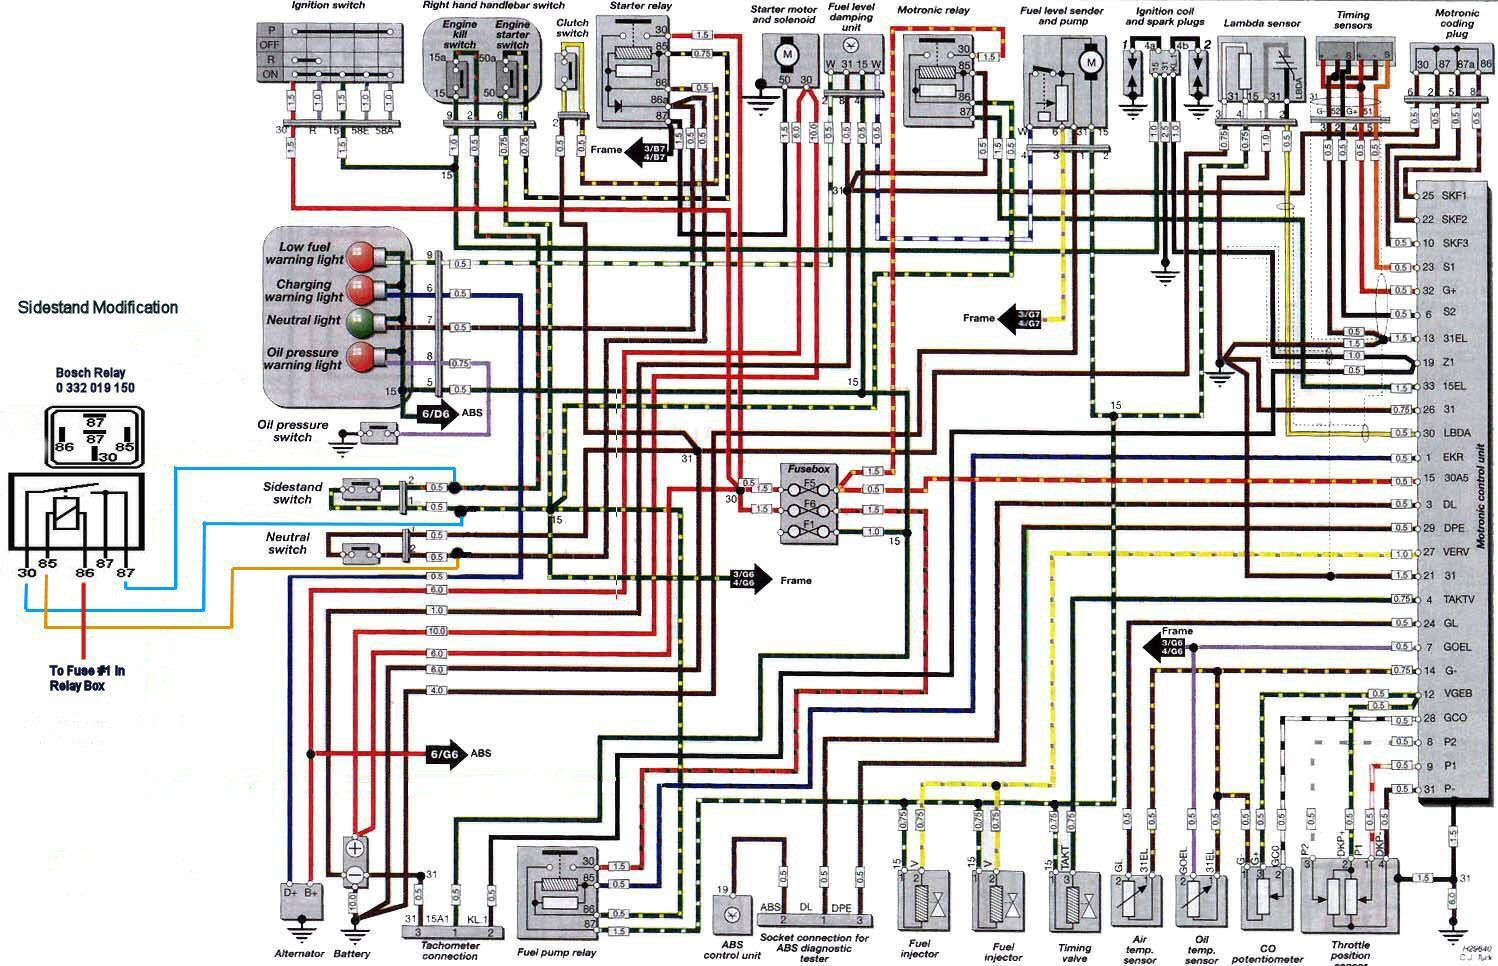 hight resolution of bmw r1150r wiring diagram starting know about wiring diagram u2022 bmw wiring diagram symbols bmw